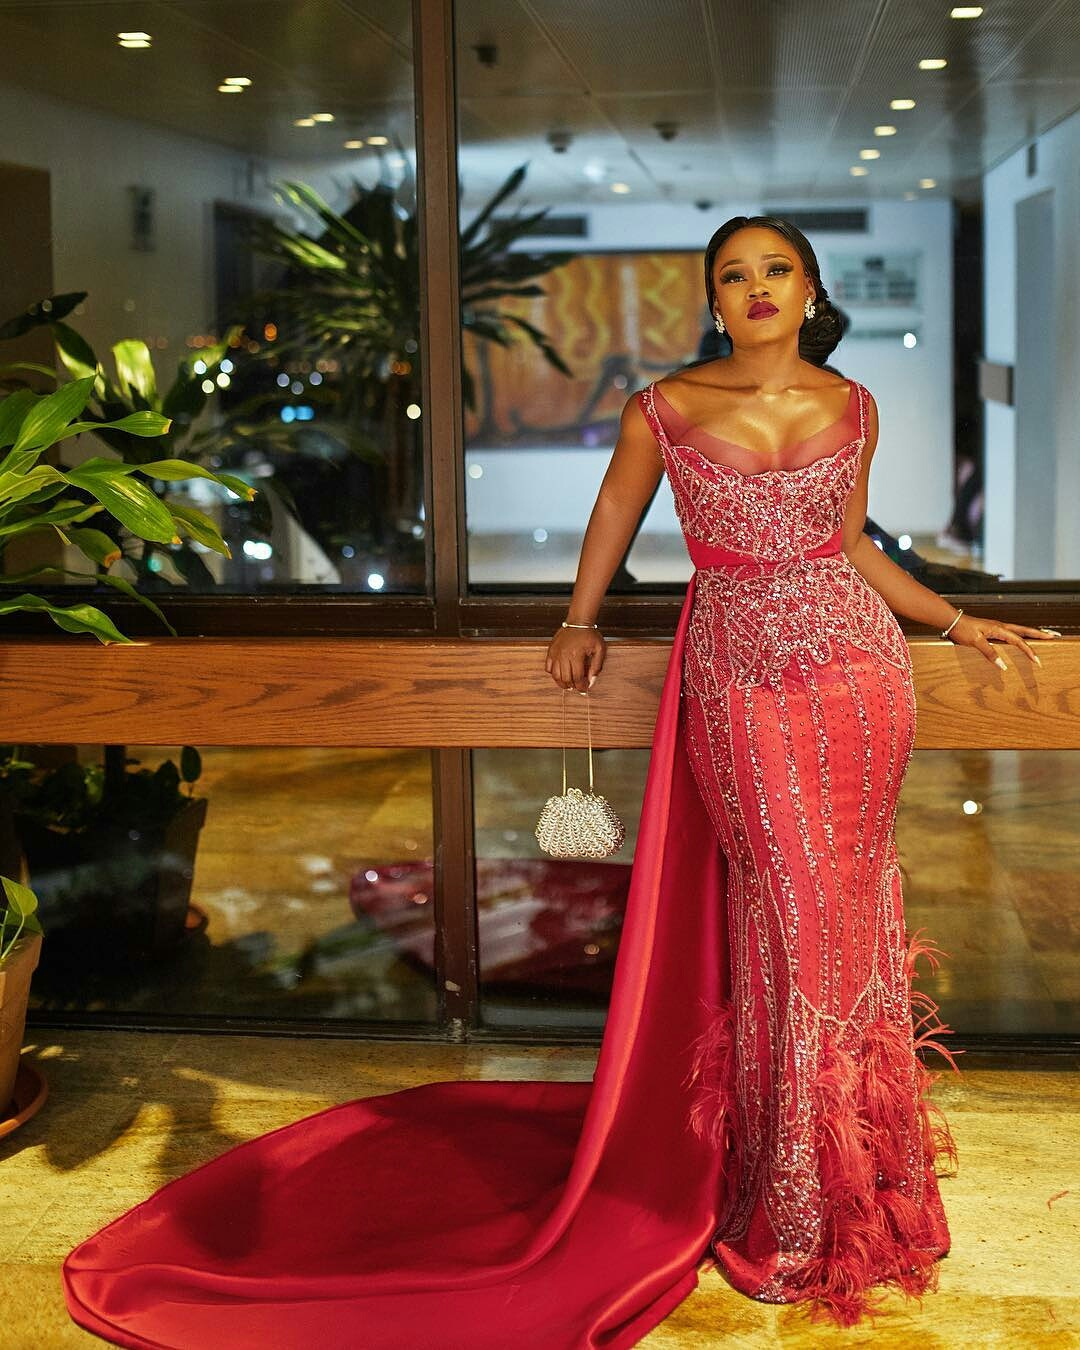 AMVCA 2018 dresses that took our breaths away